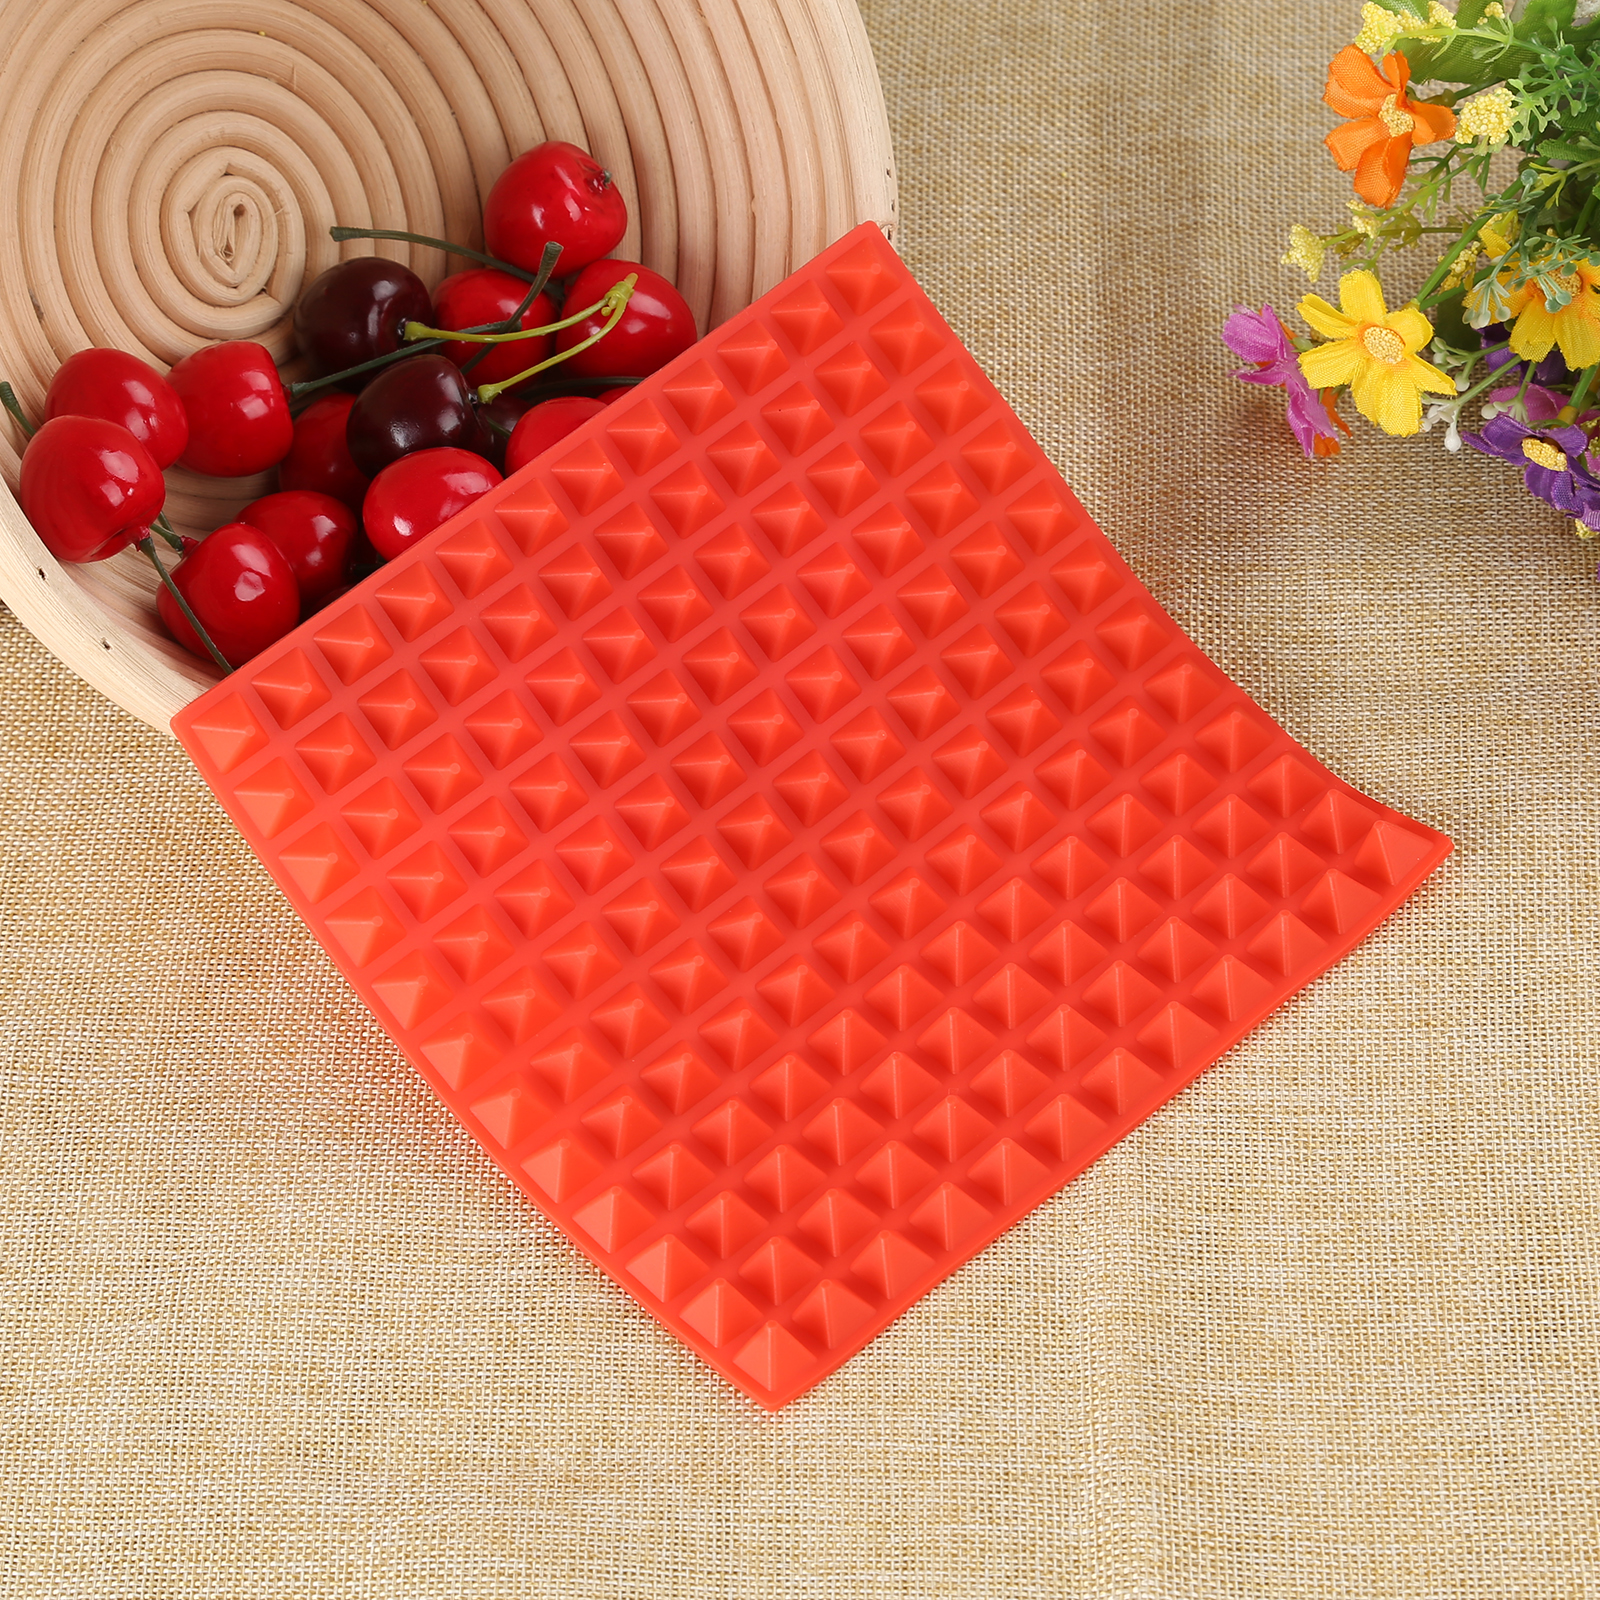 3 Colors Silicone Baking Mat In Non Toxic And High Temperature Resistance For Chocolate And Jelly Pudding 16